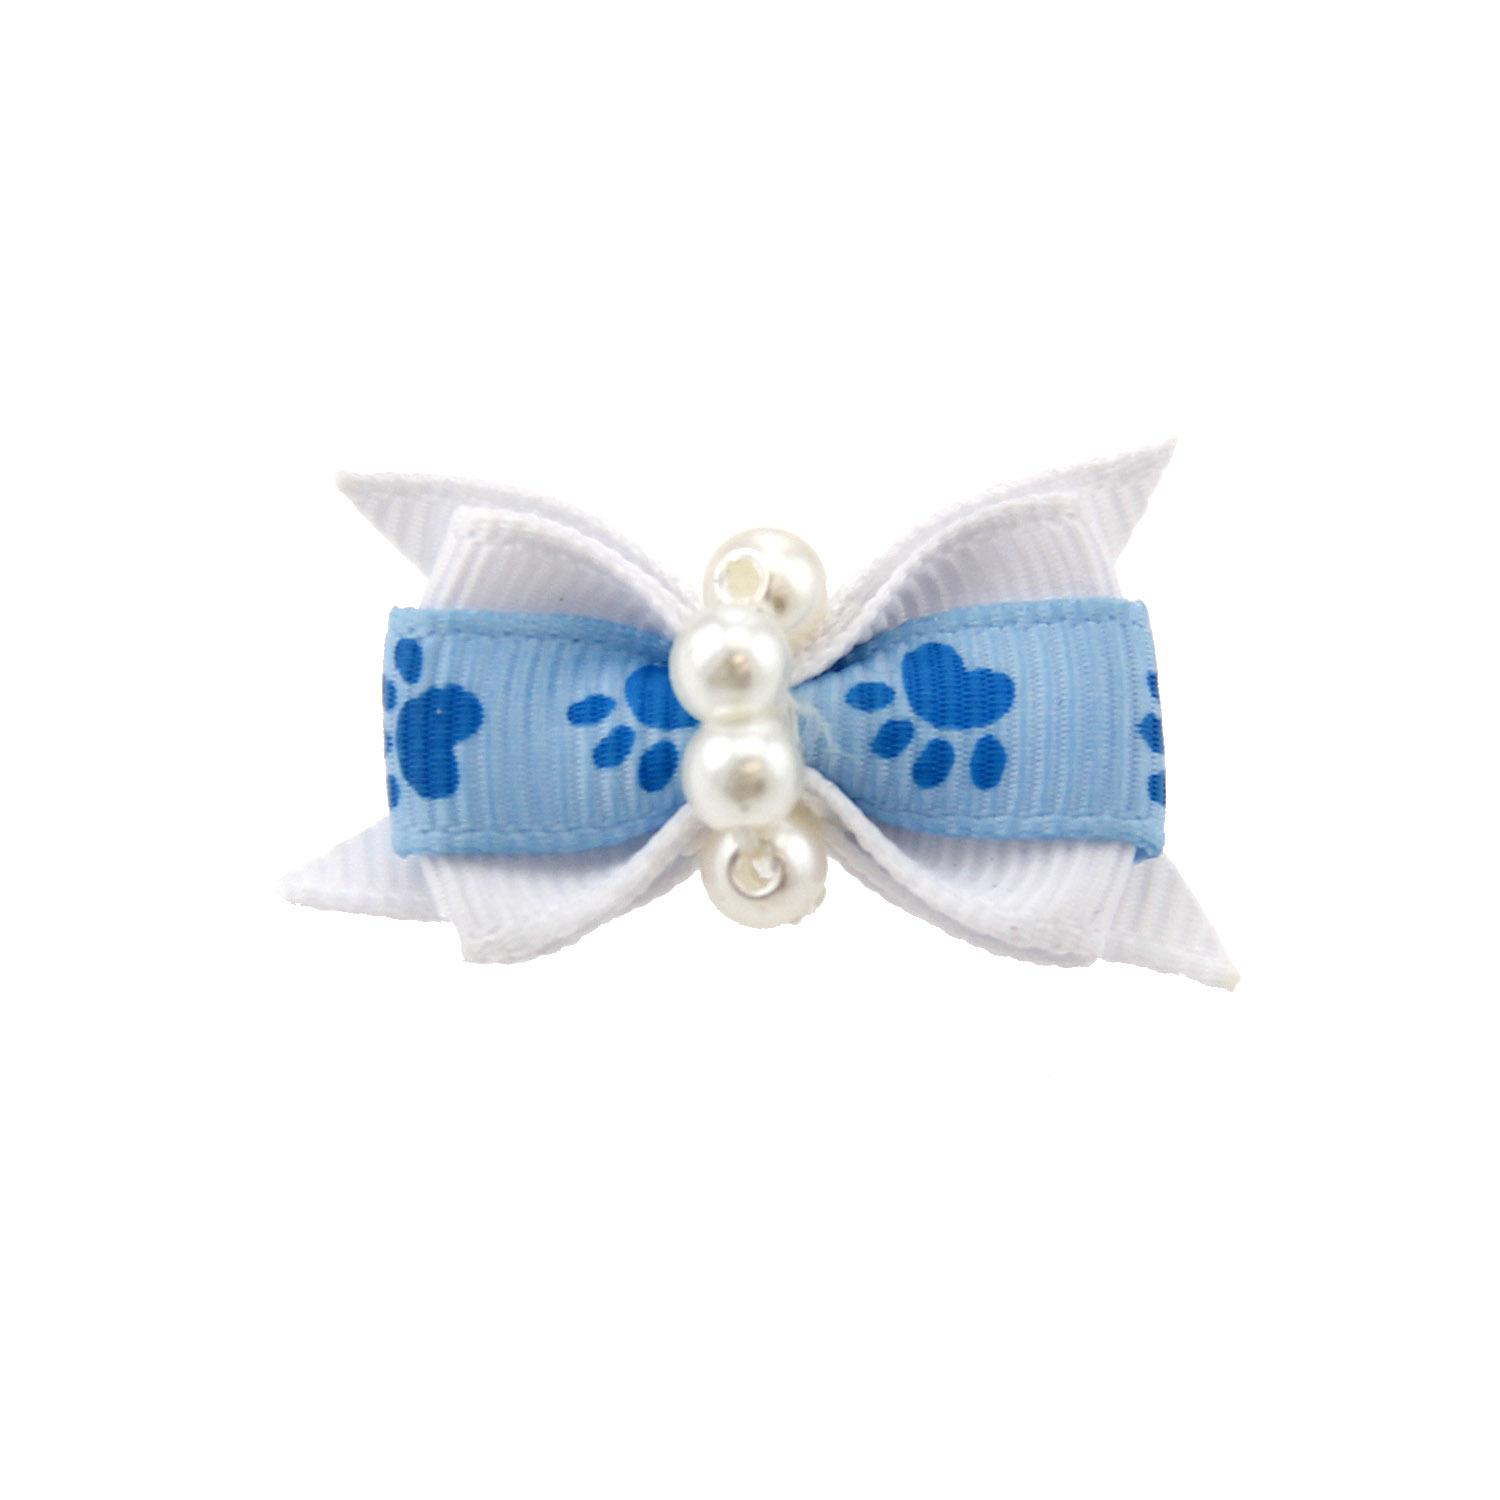 Paw Dog Bow with Alligator Clip - Blue Topaz